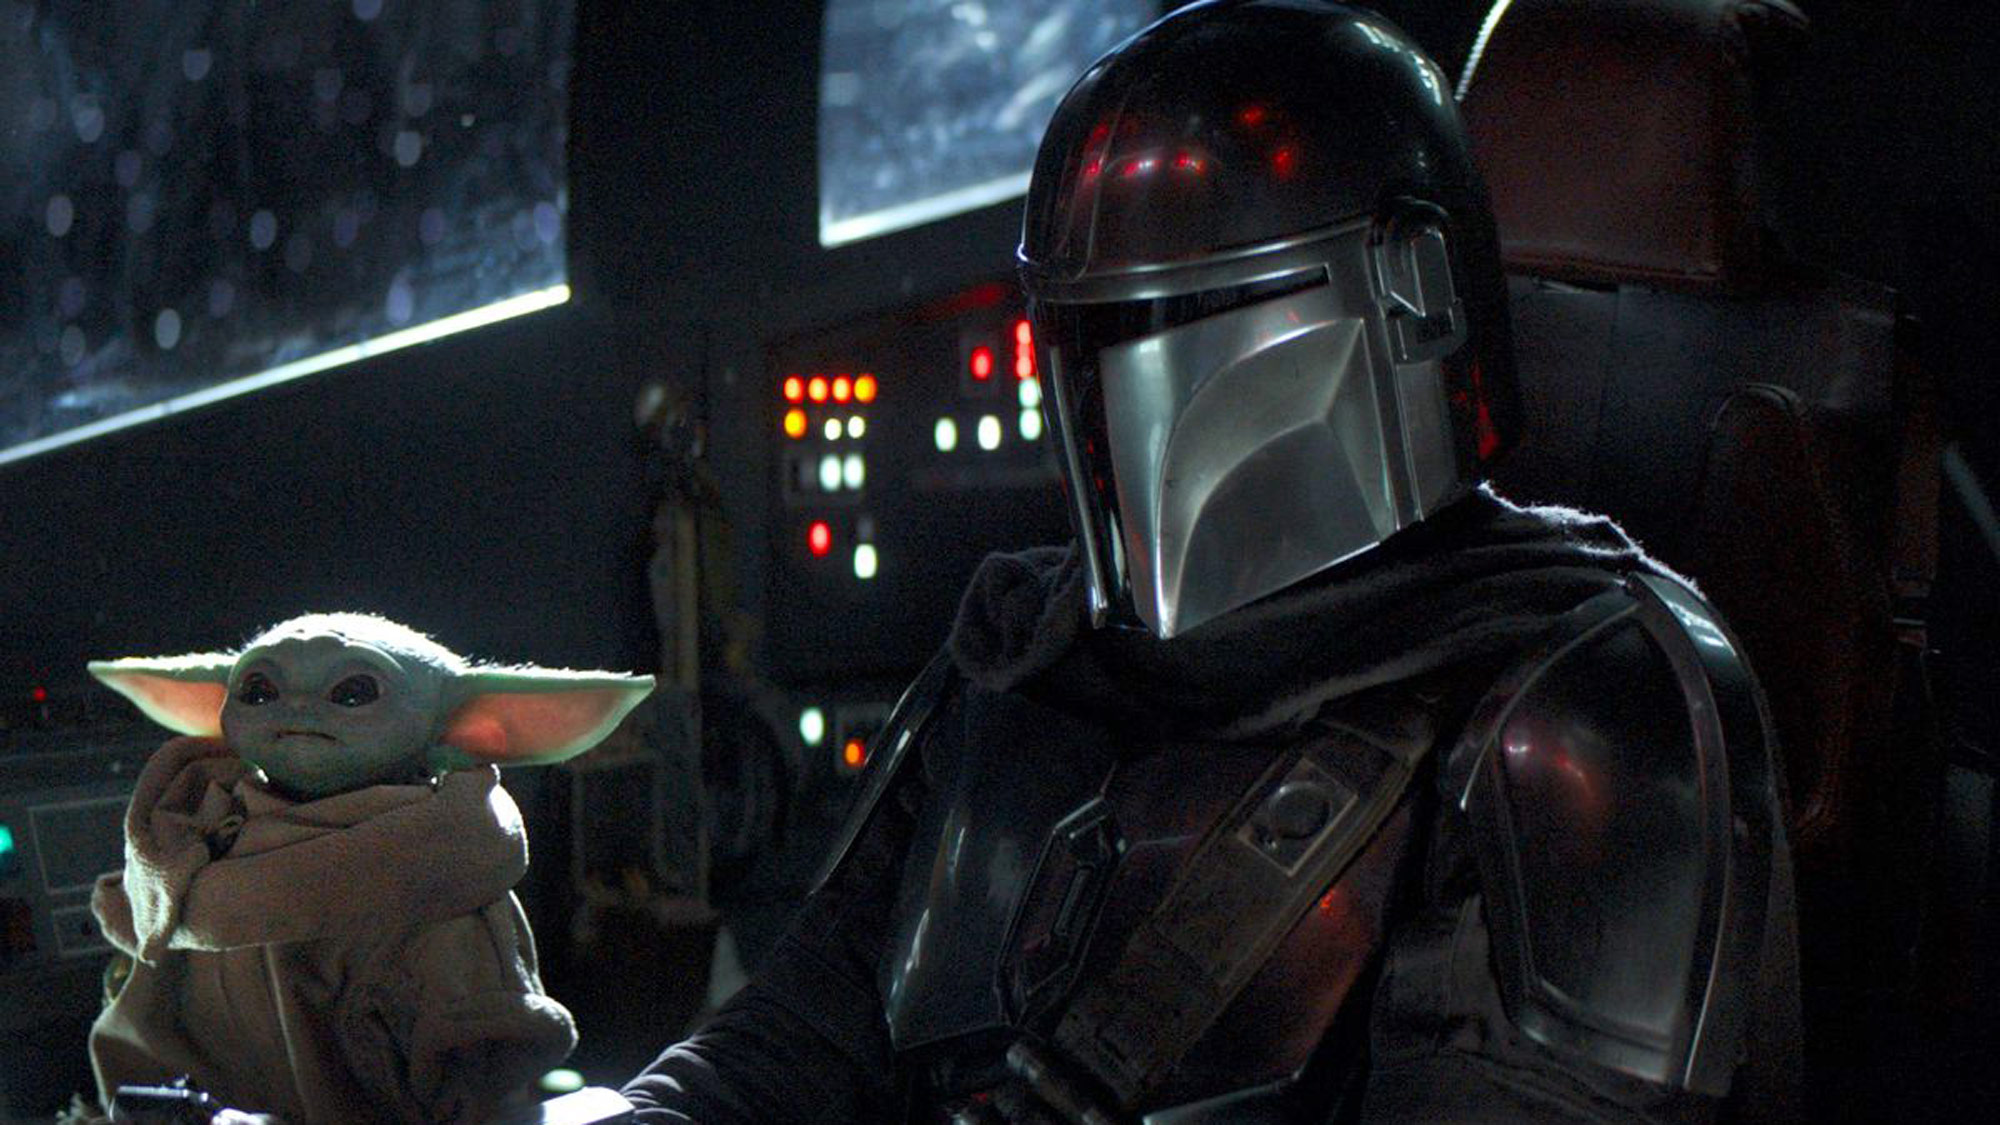 The Mandalorian Season 2 Release Date Cast Trailer And More Tom S Guide